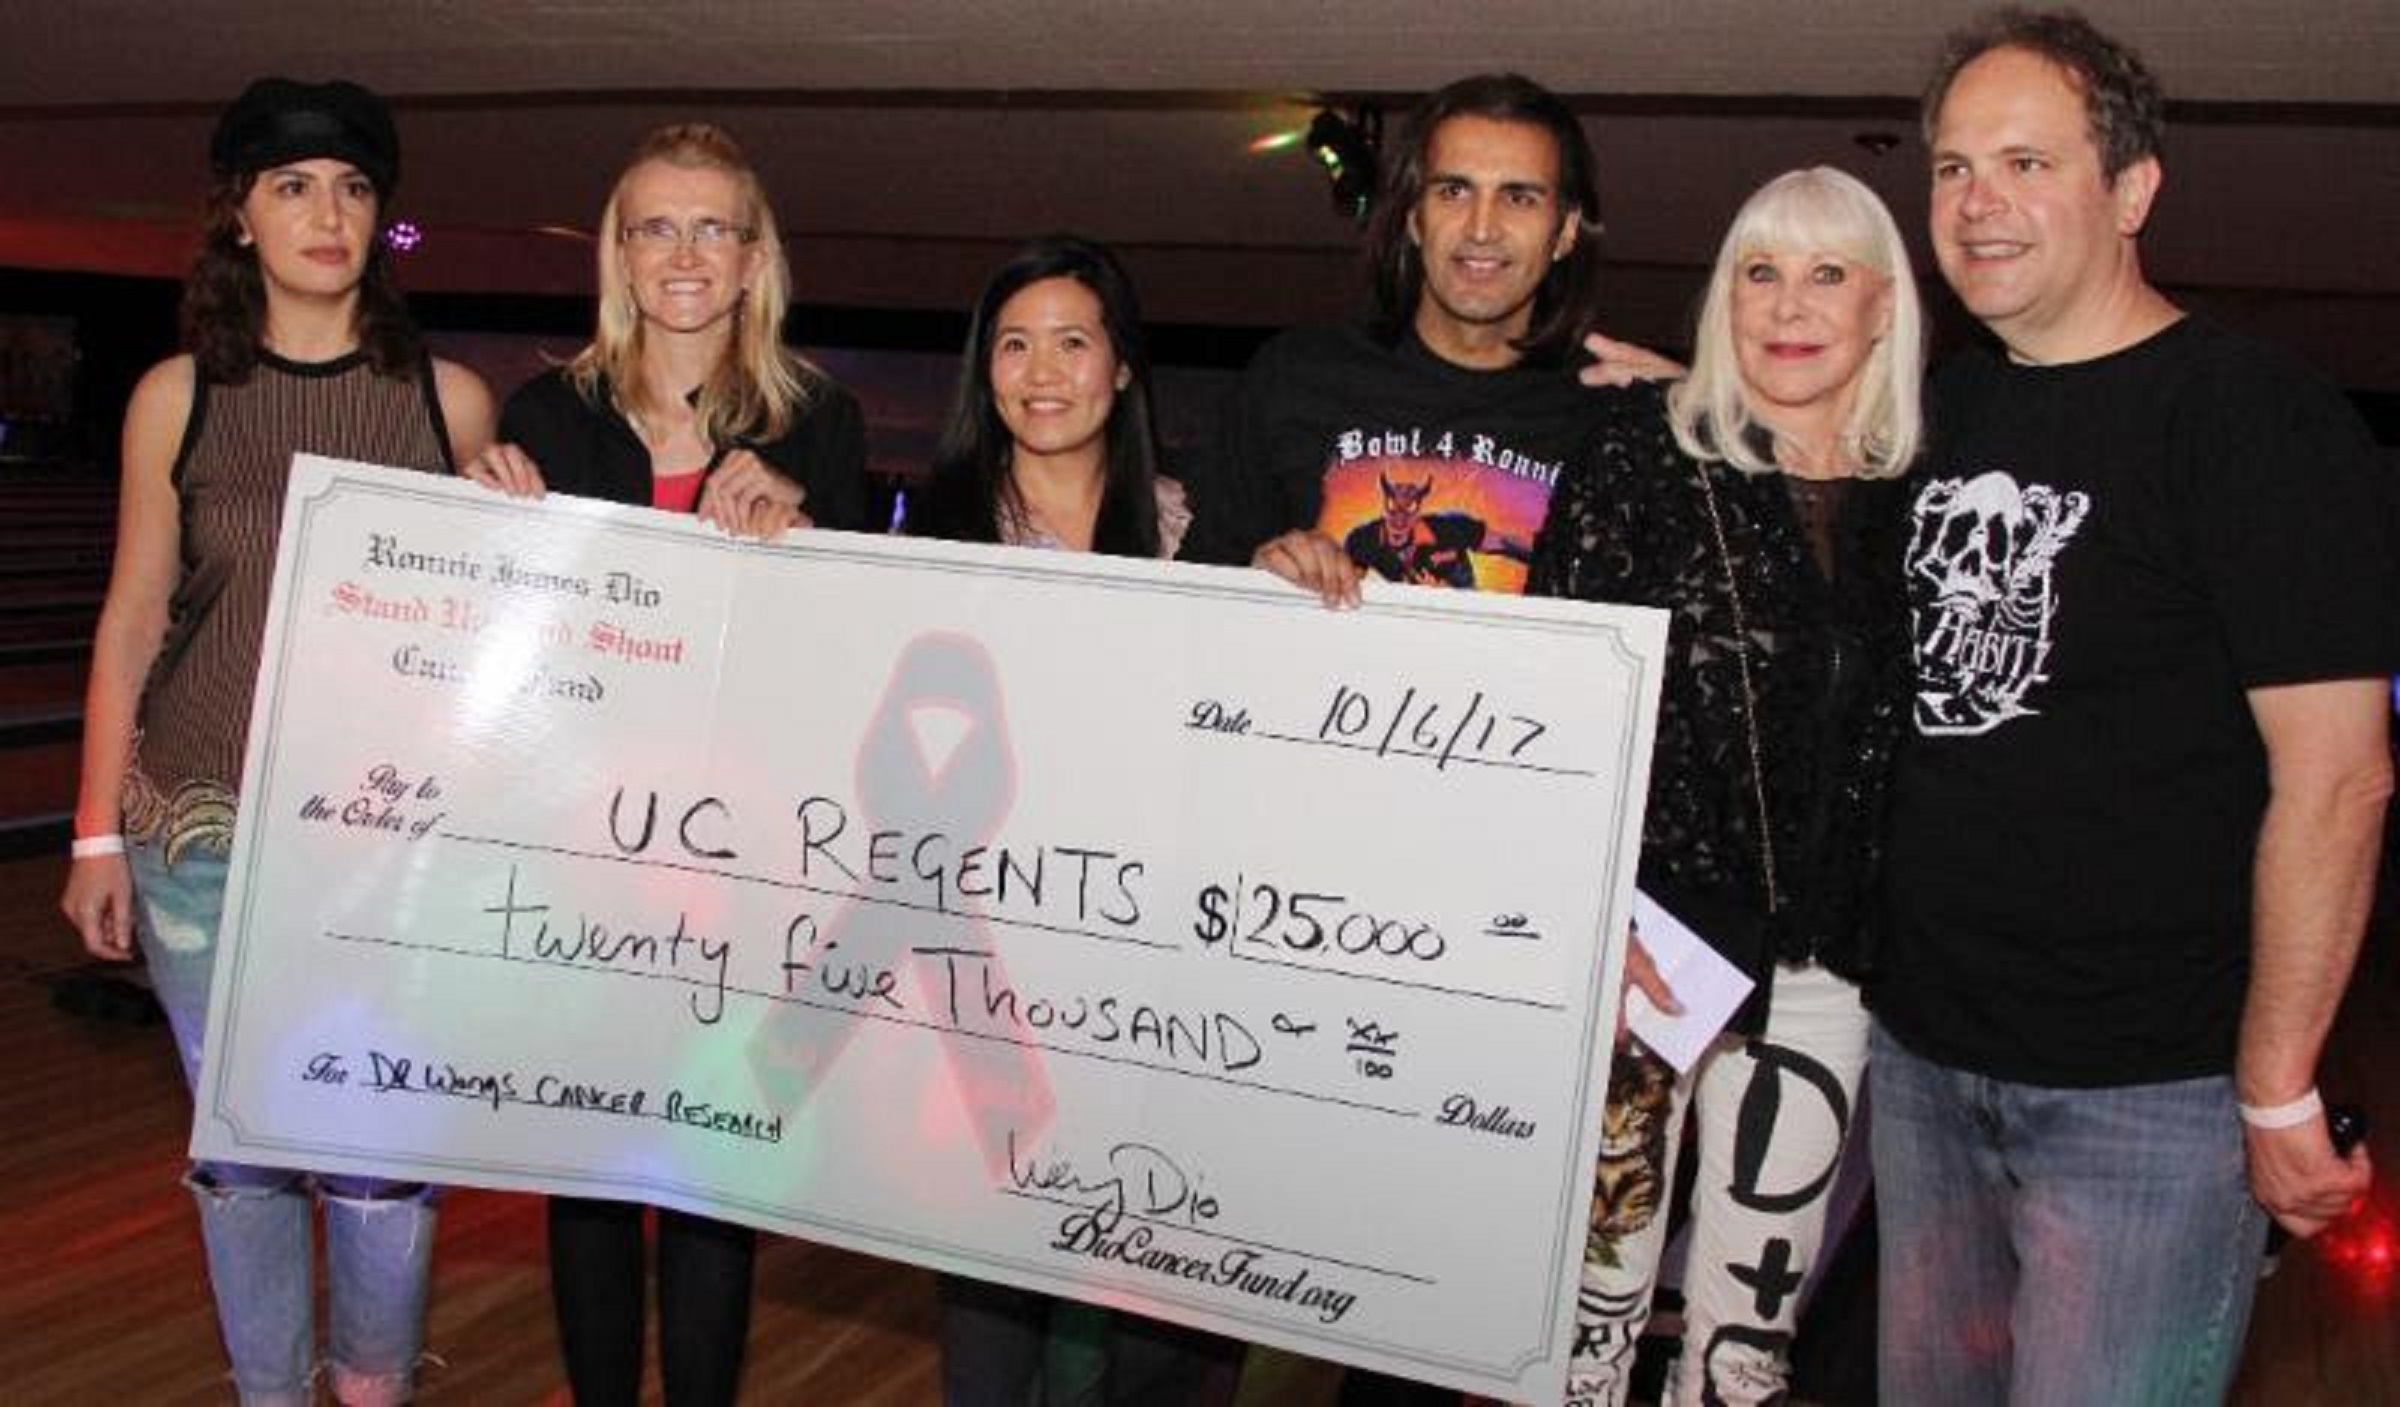 'Bowl for Ronnie' Raises $49,000 for Dio Cancer Fund